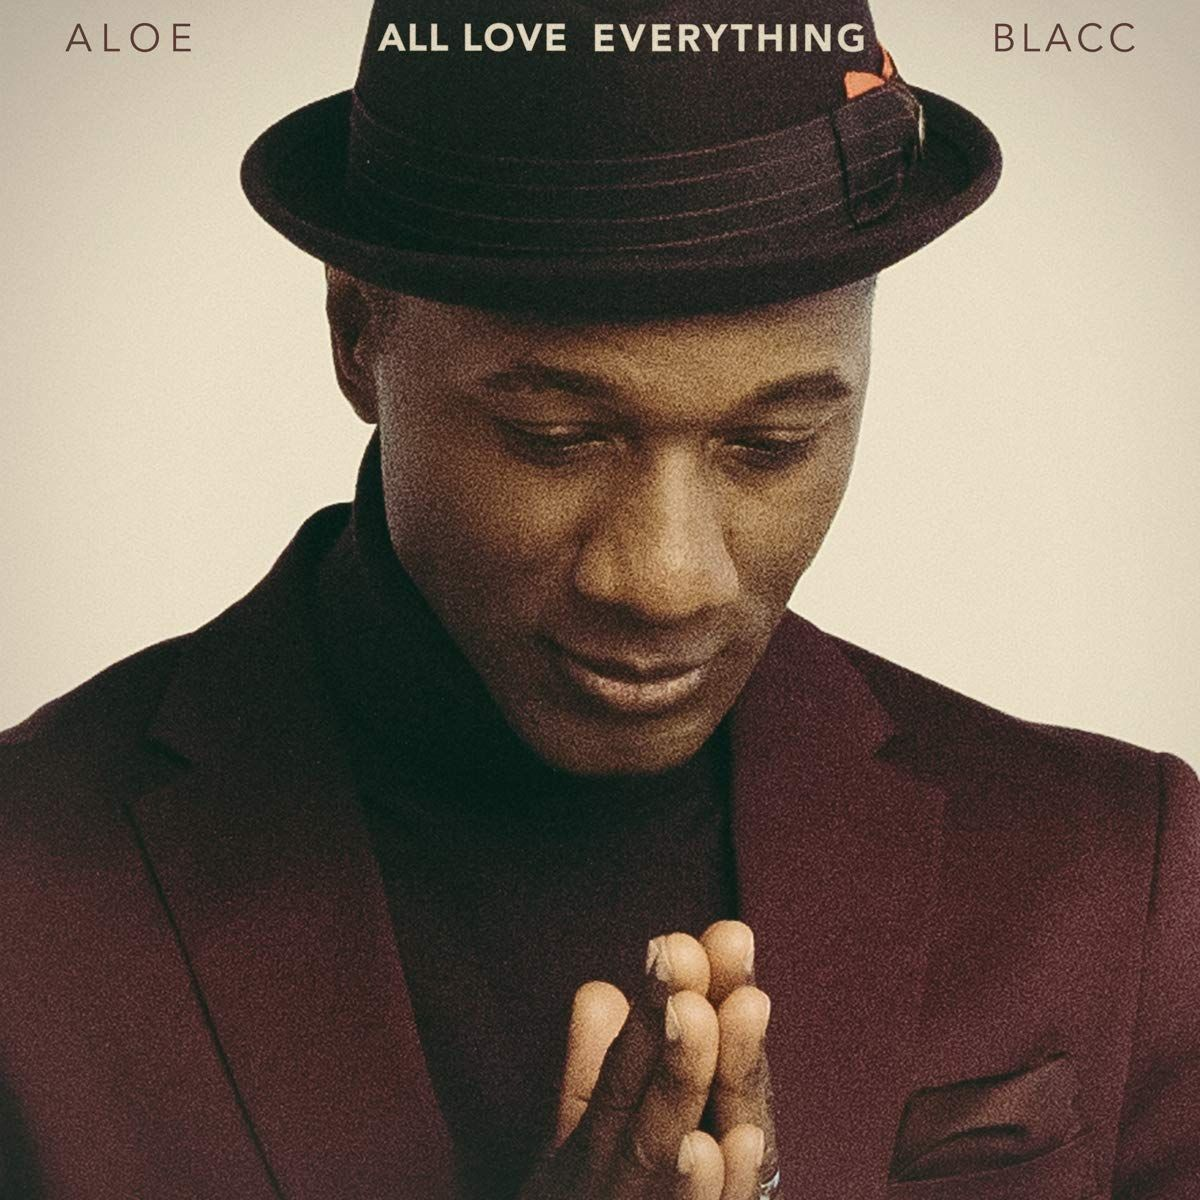 Blacc Aloe – All Love Everything